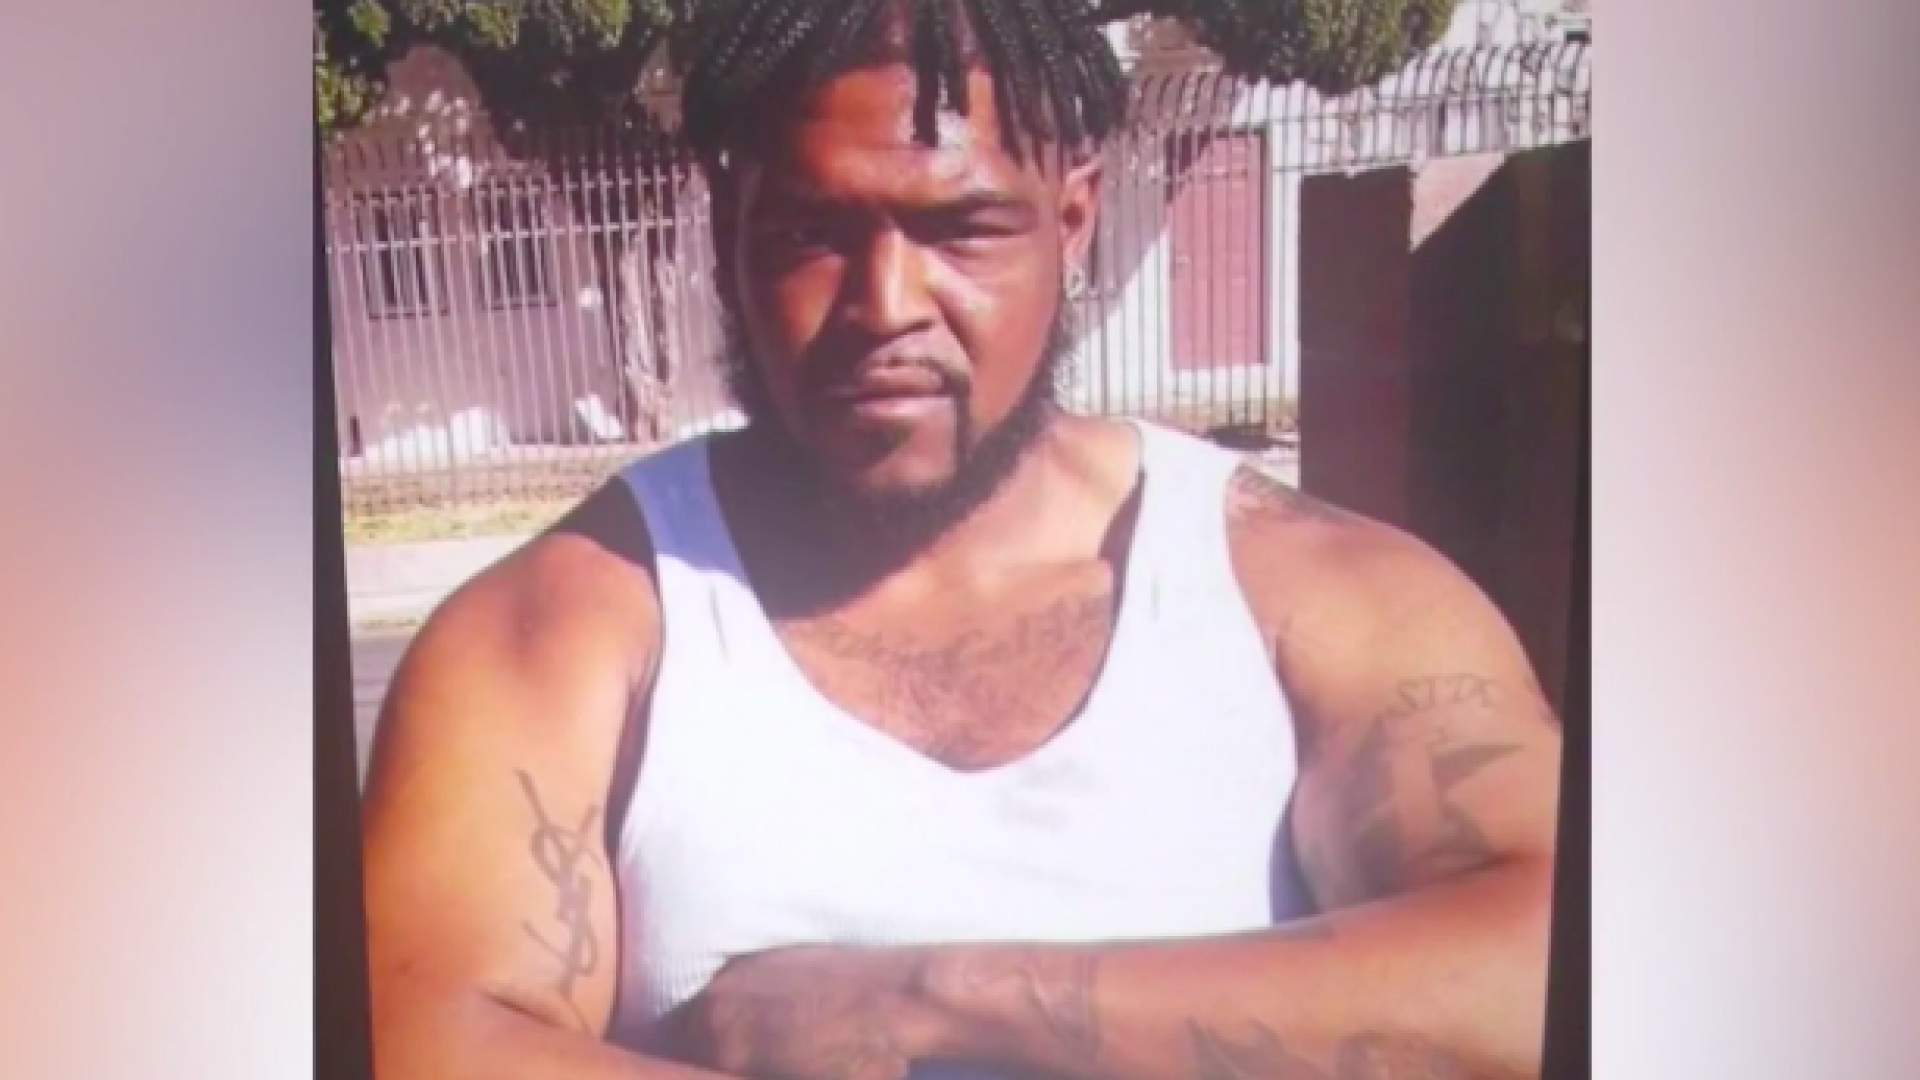 Los Angeles Deputies Fatally Shoot Black Man Who Dropped Bundle With Handgun